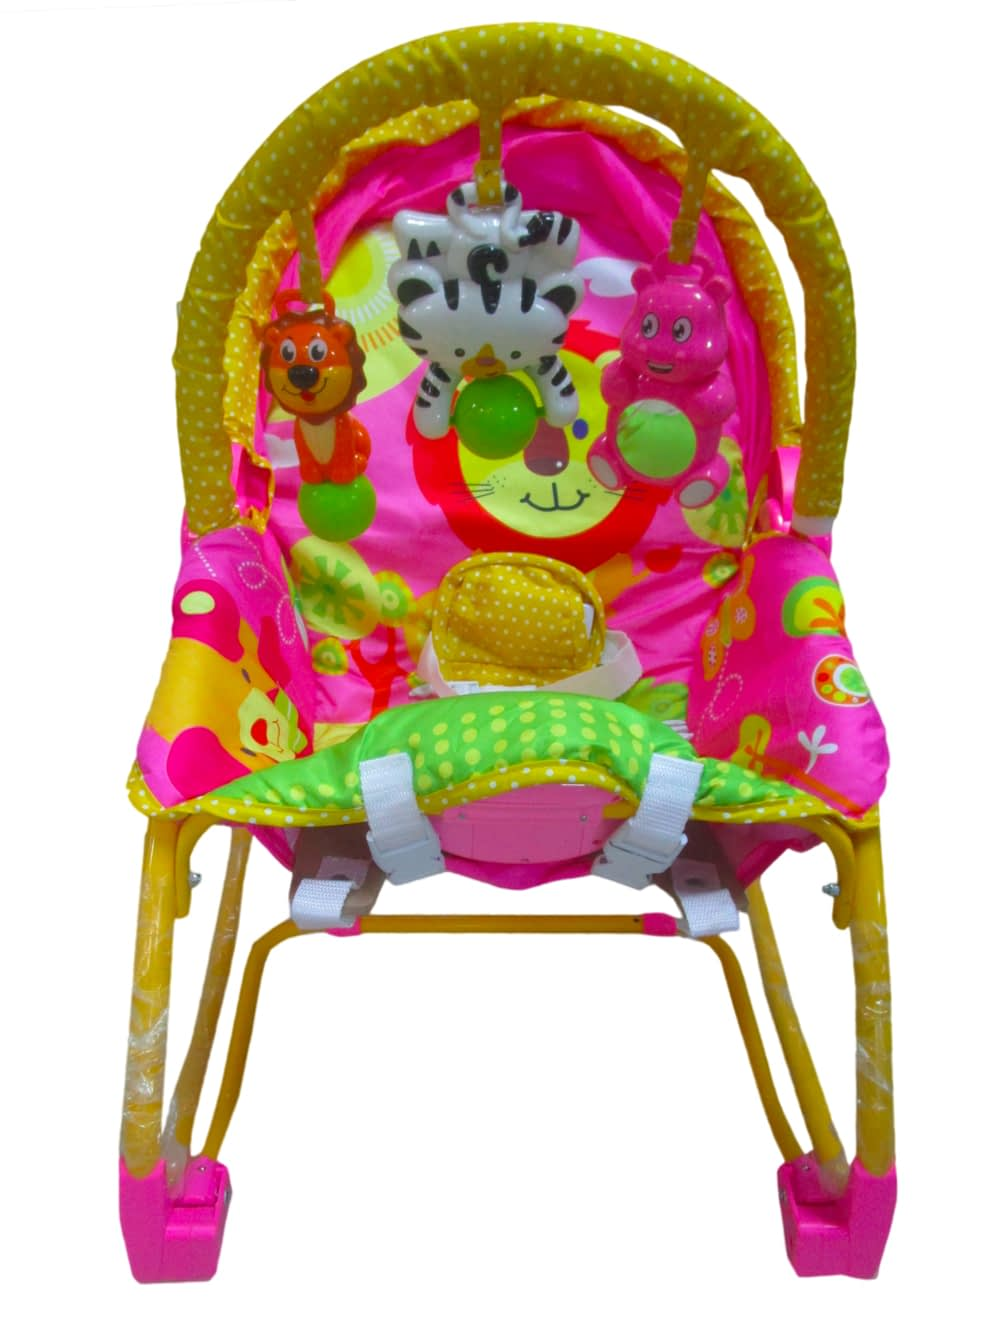 Buy Baby Rocking Chair Today Online At Best Price Goga